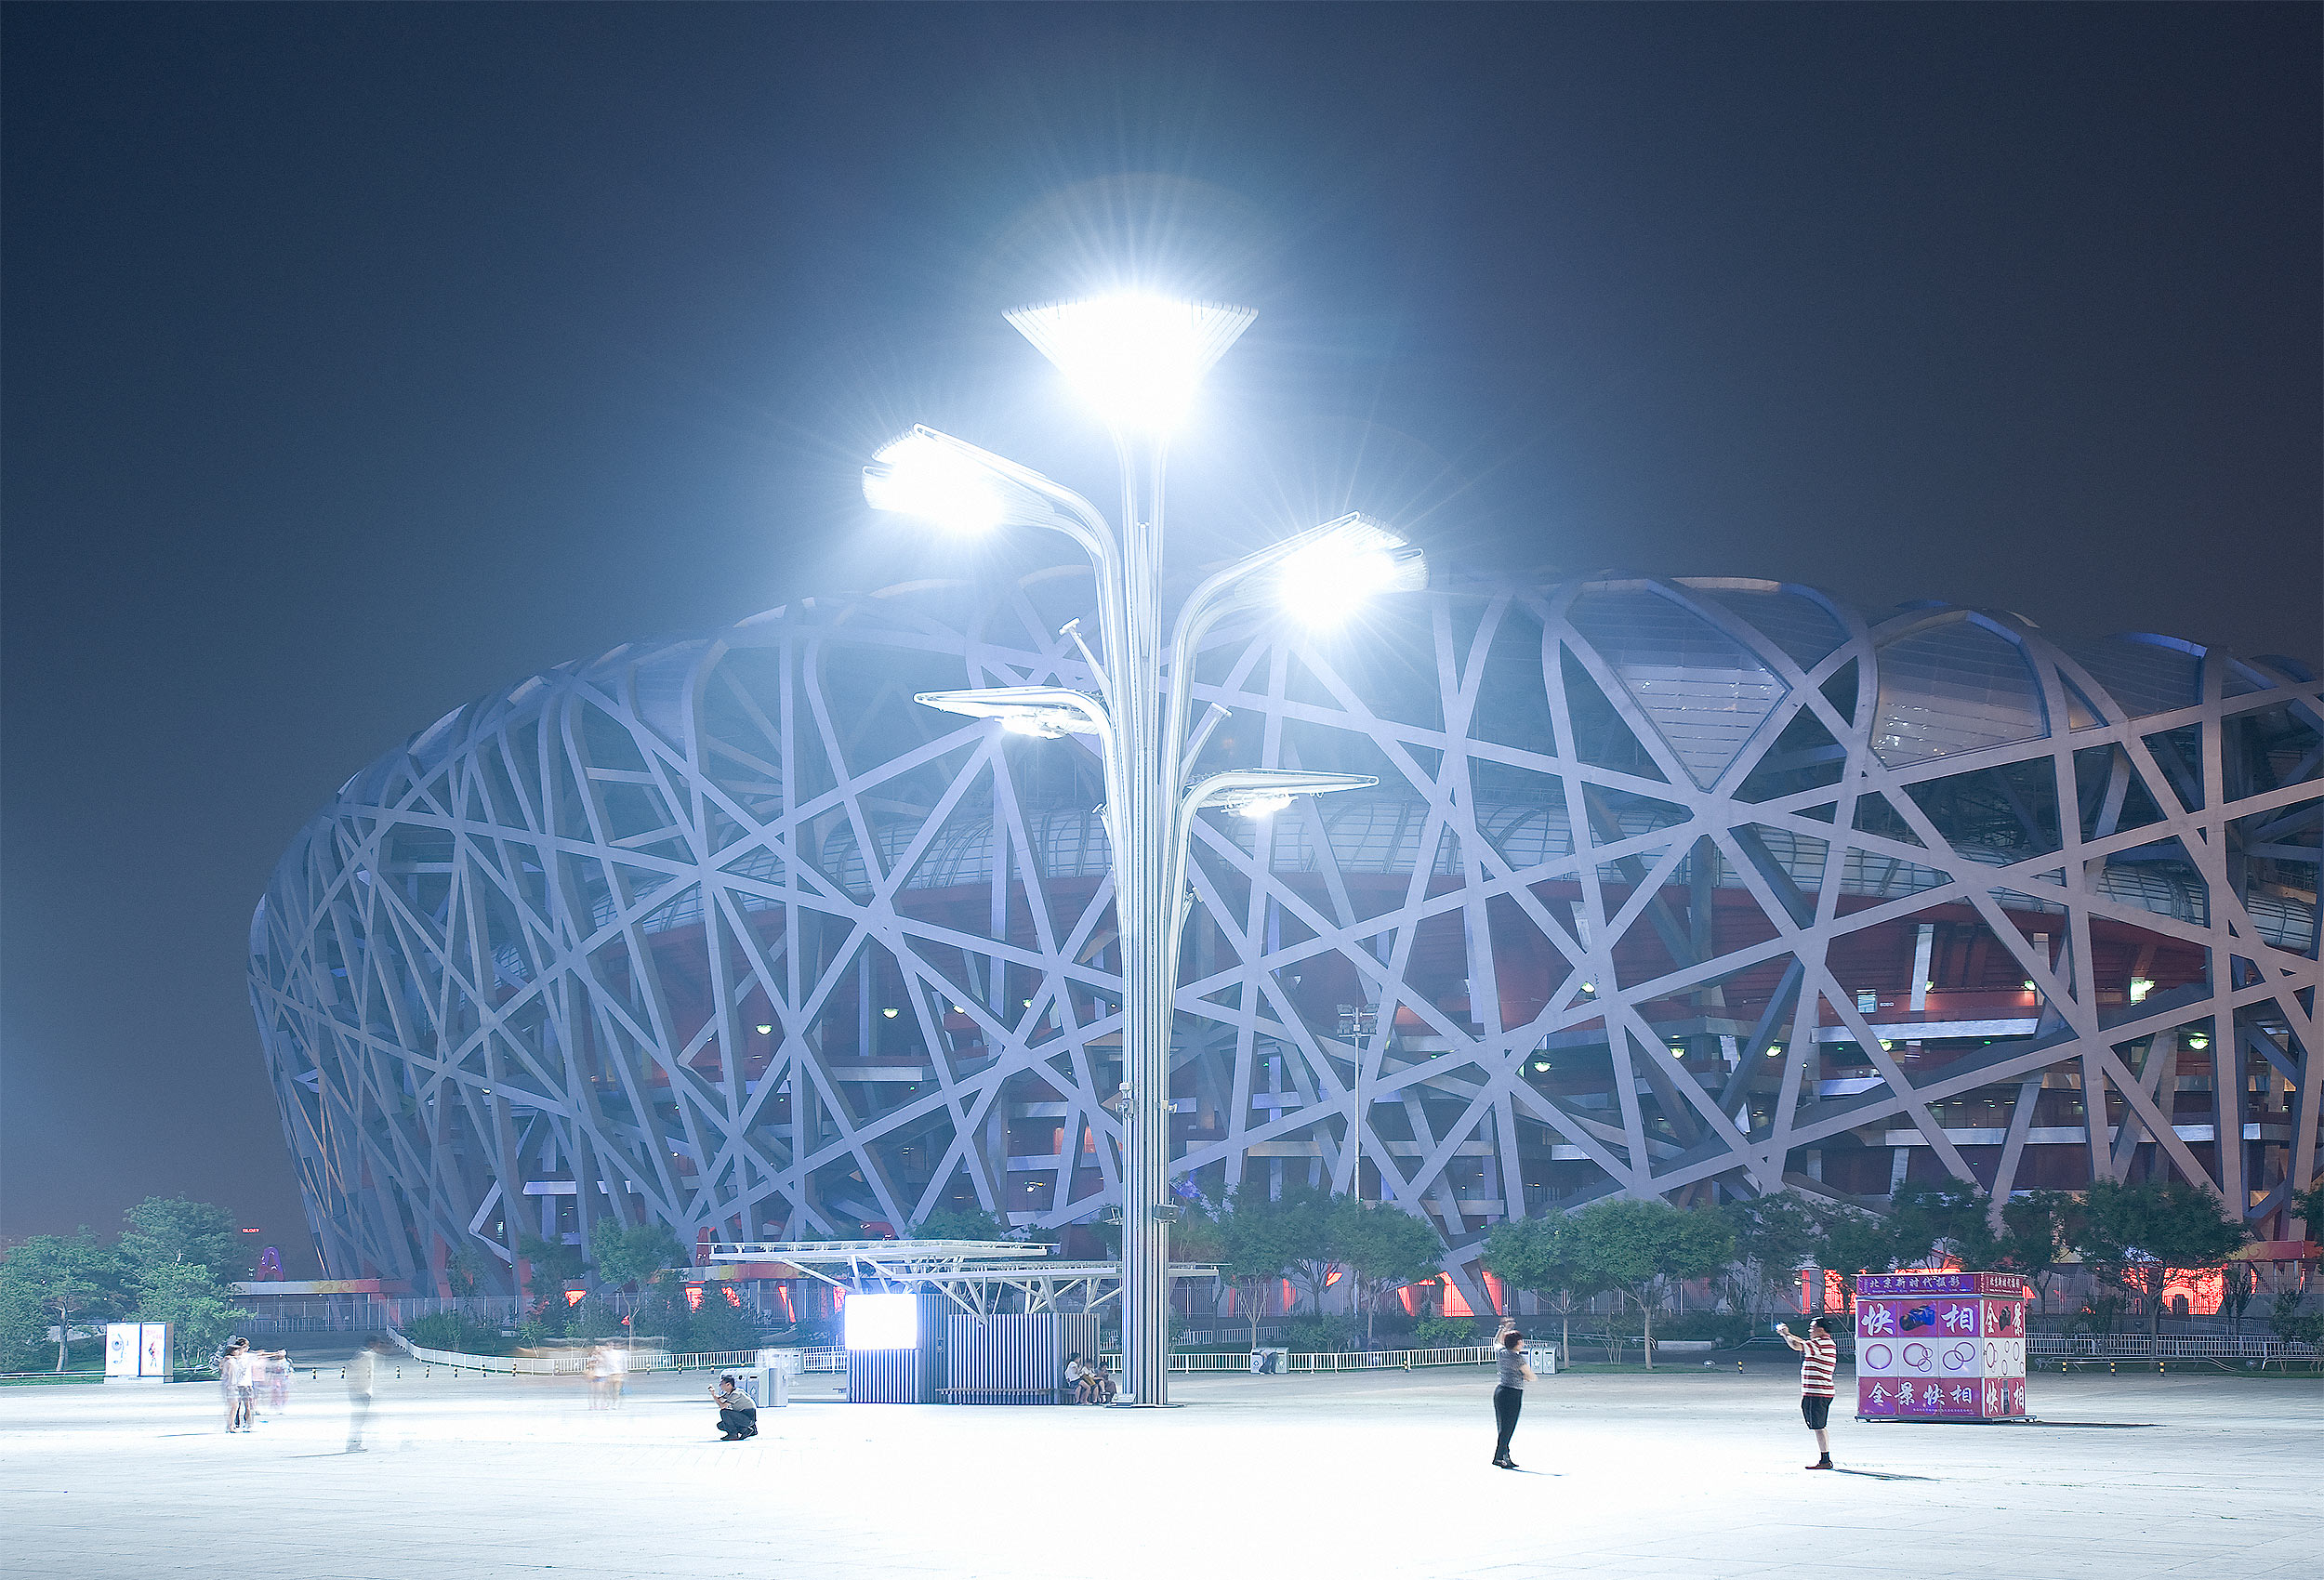 Stadium in Beijing, China by architectural photographer Kristopher Grunert.